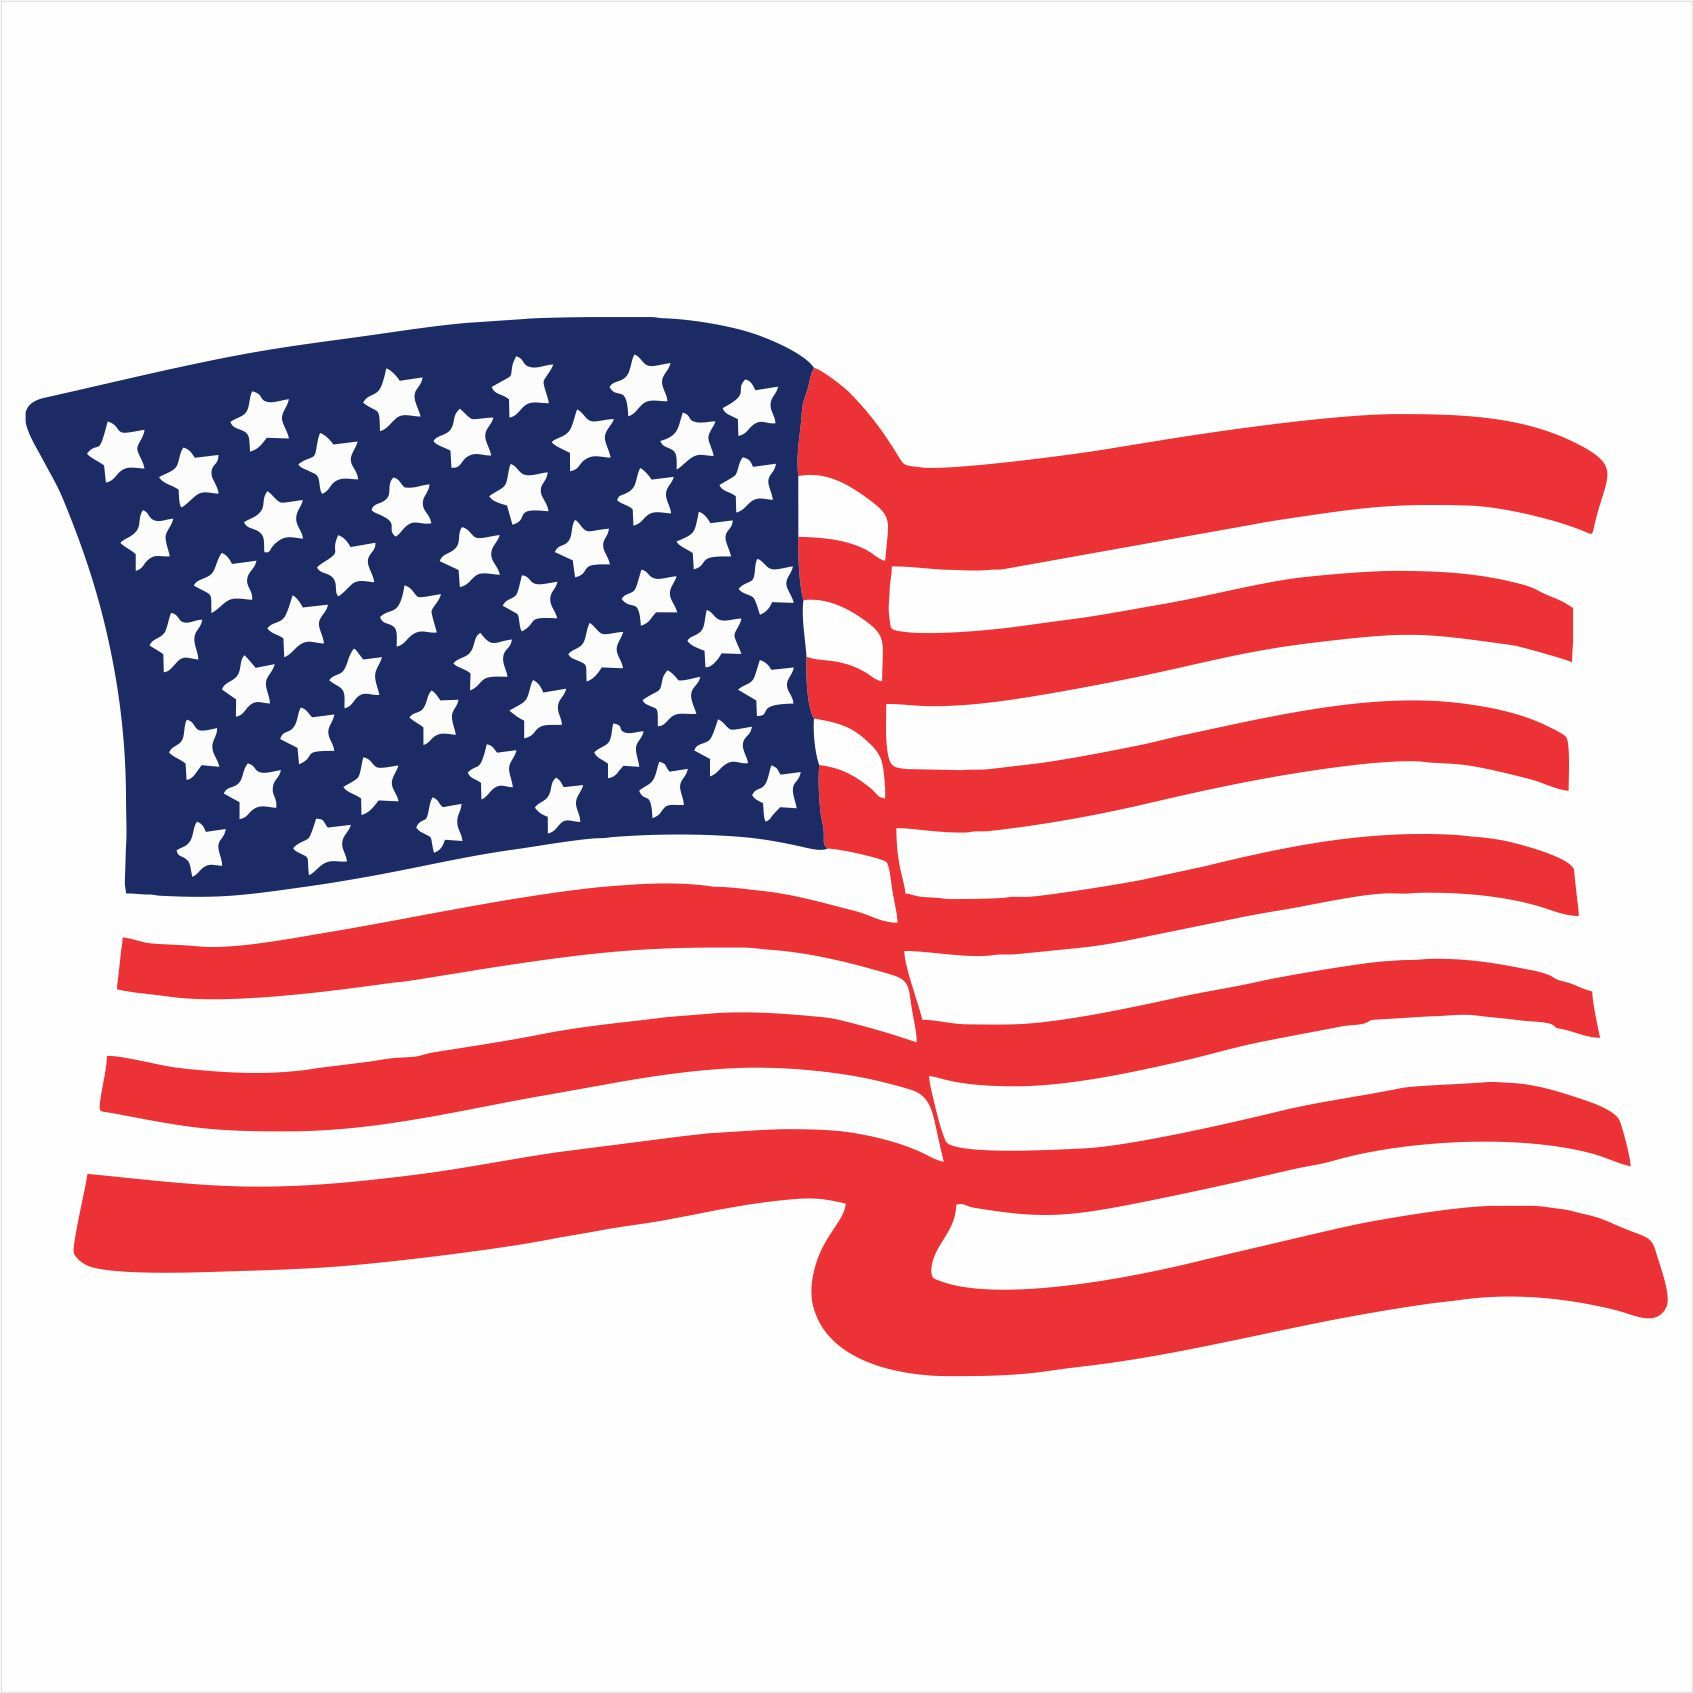 Waving American Flag Firefighter Emt Police Themed Design Can Be